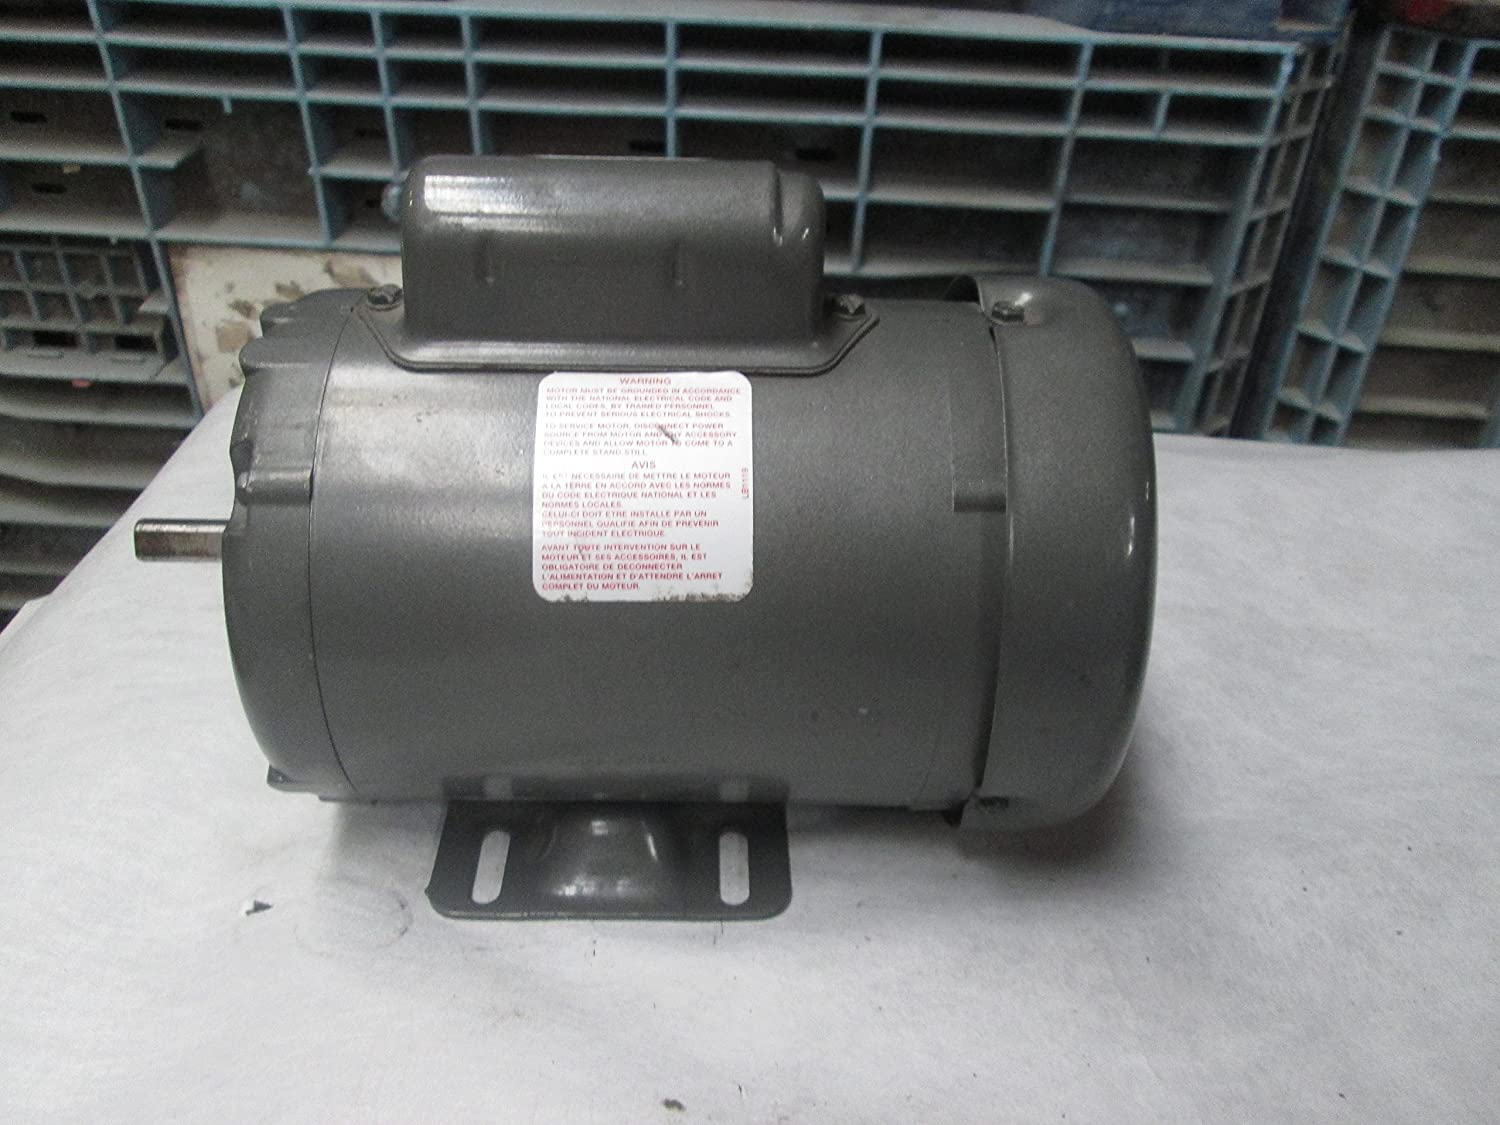 Baldor L3406 General Purpose AC Motor, Single Phase, 48 Frame, TEFC Enclosure, 33/100Hp Output, 1725rpm, 60Hz, 115/230V Voltage by Baldor B007ZQR3OS